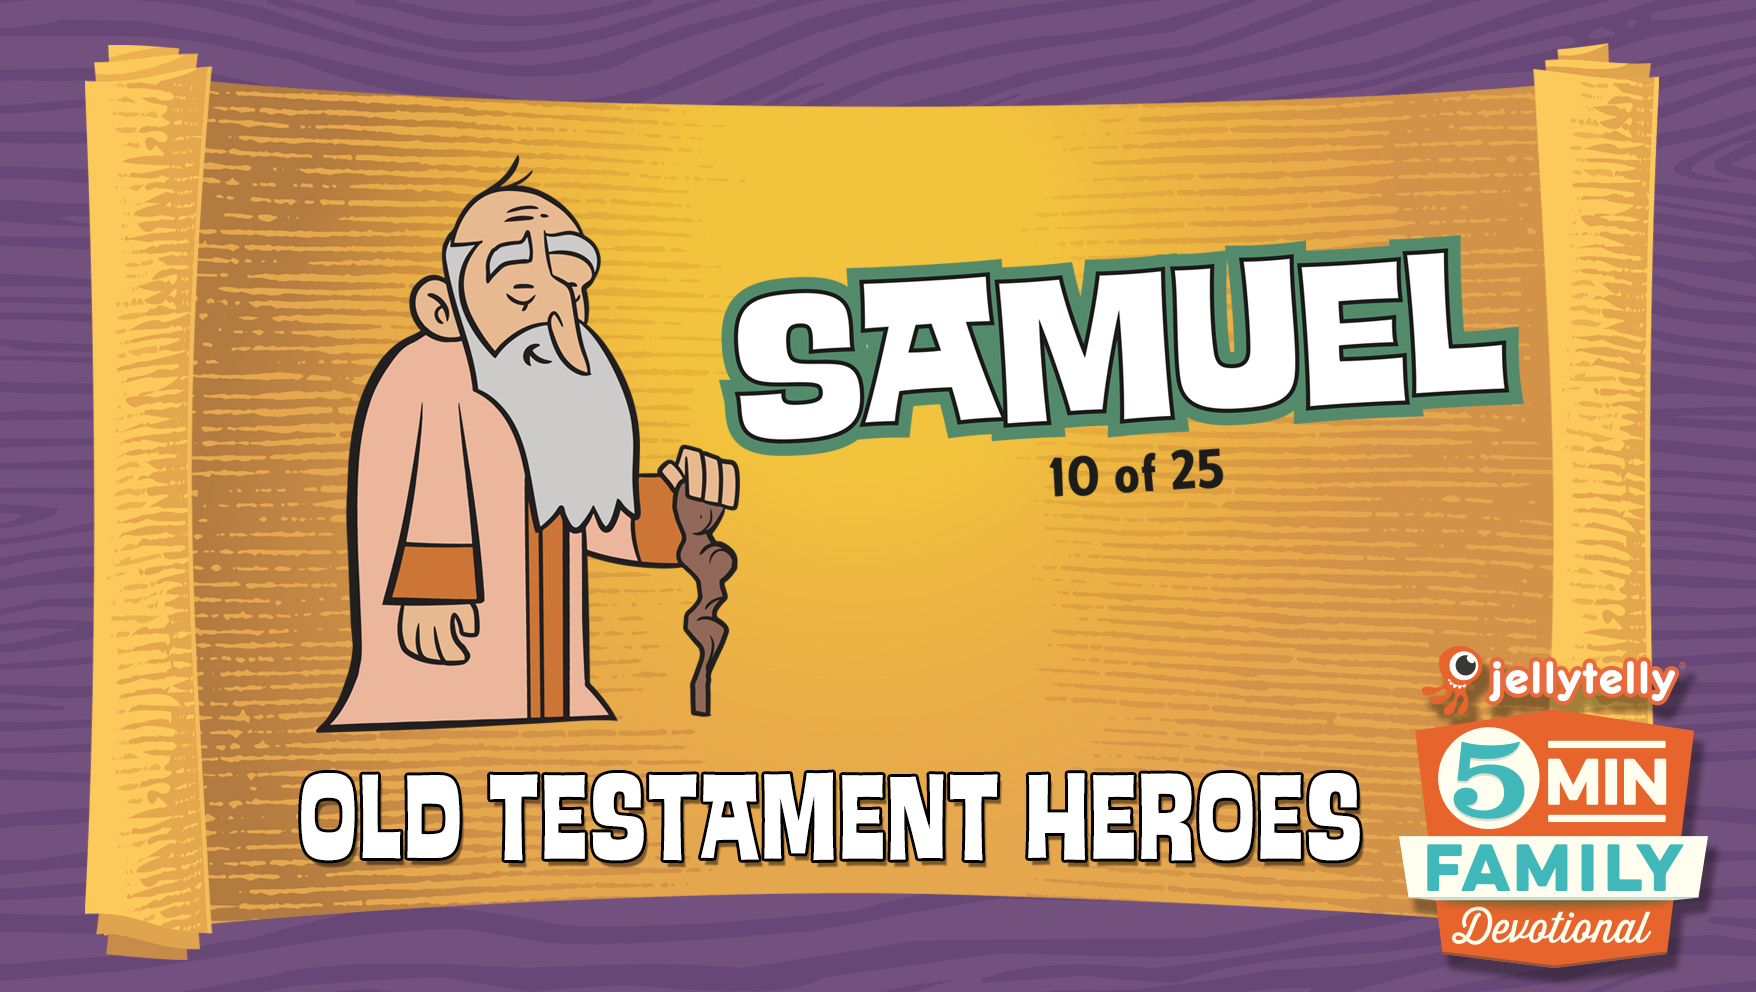 Samuel: Old Testament Heroes - 5 Minute Family Devotional